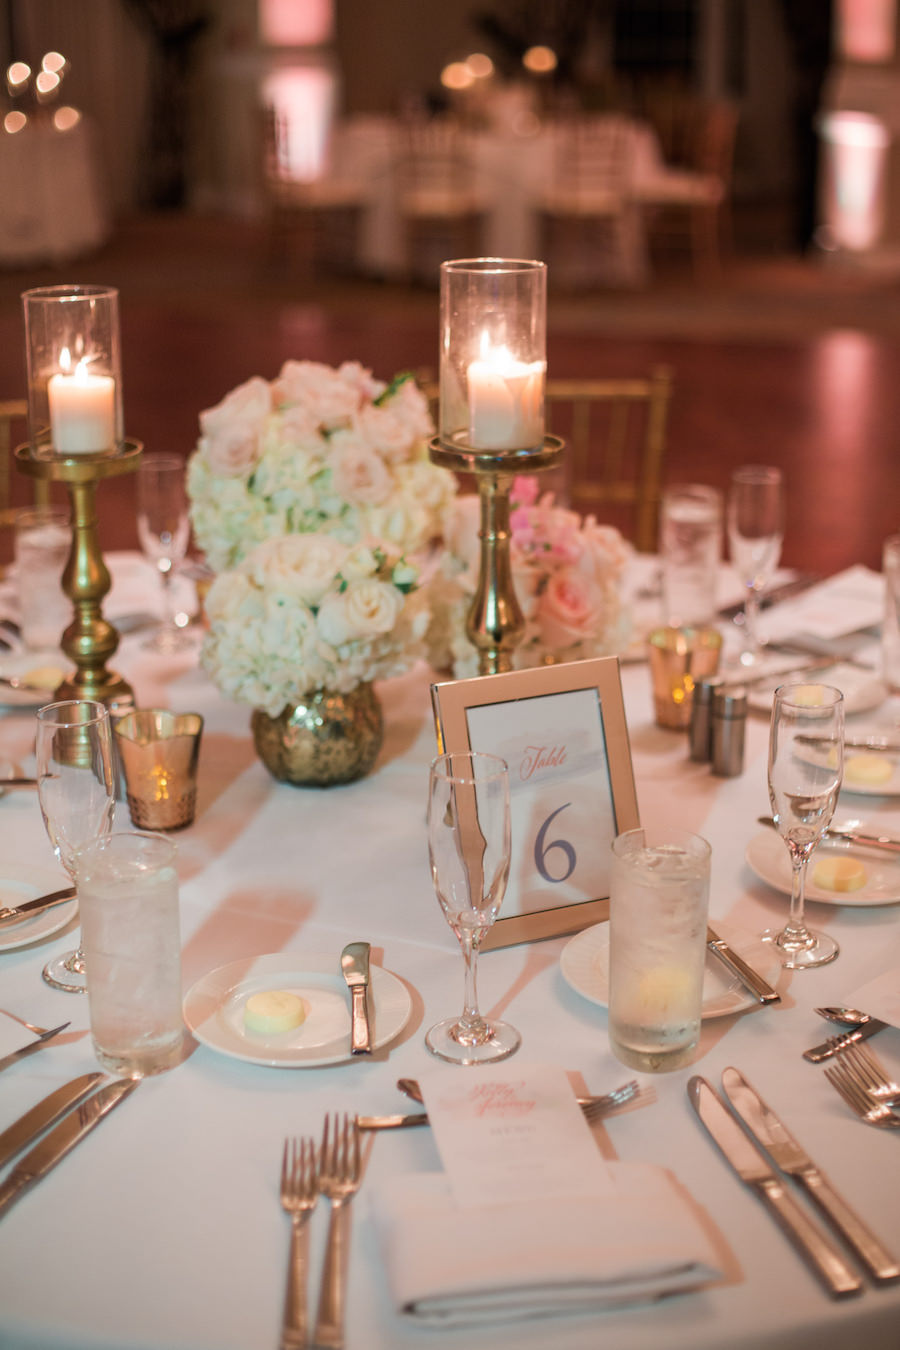 White Hydrangea and Blush Pink Rose Centerpiece Flowers with Tall Candles and Gold Chiavari Chairs | Wedding Reception Decor Inspiration